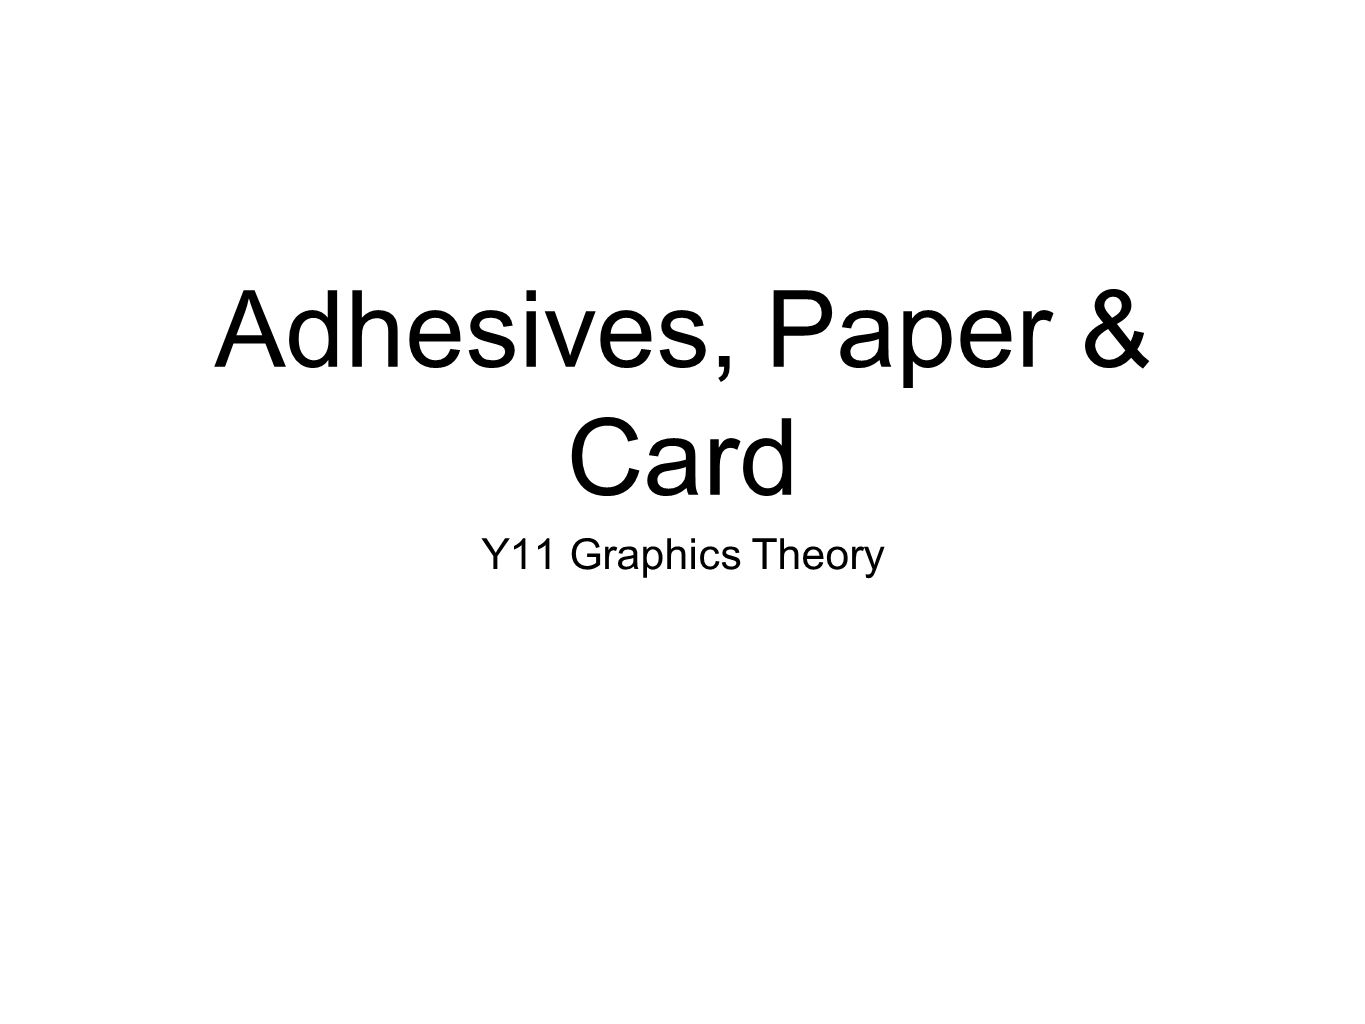 Adhesives, Paper & Card Y11 Graphics Theory